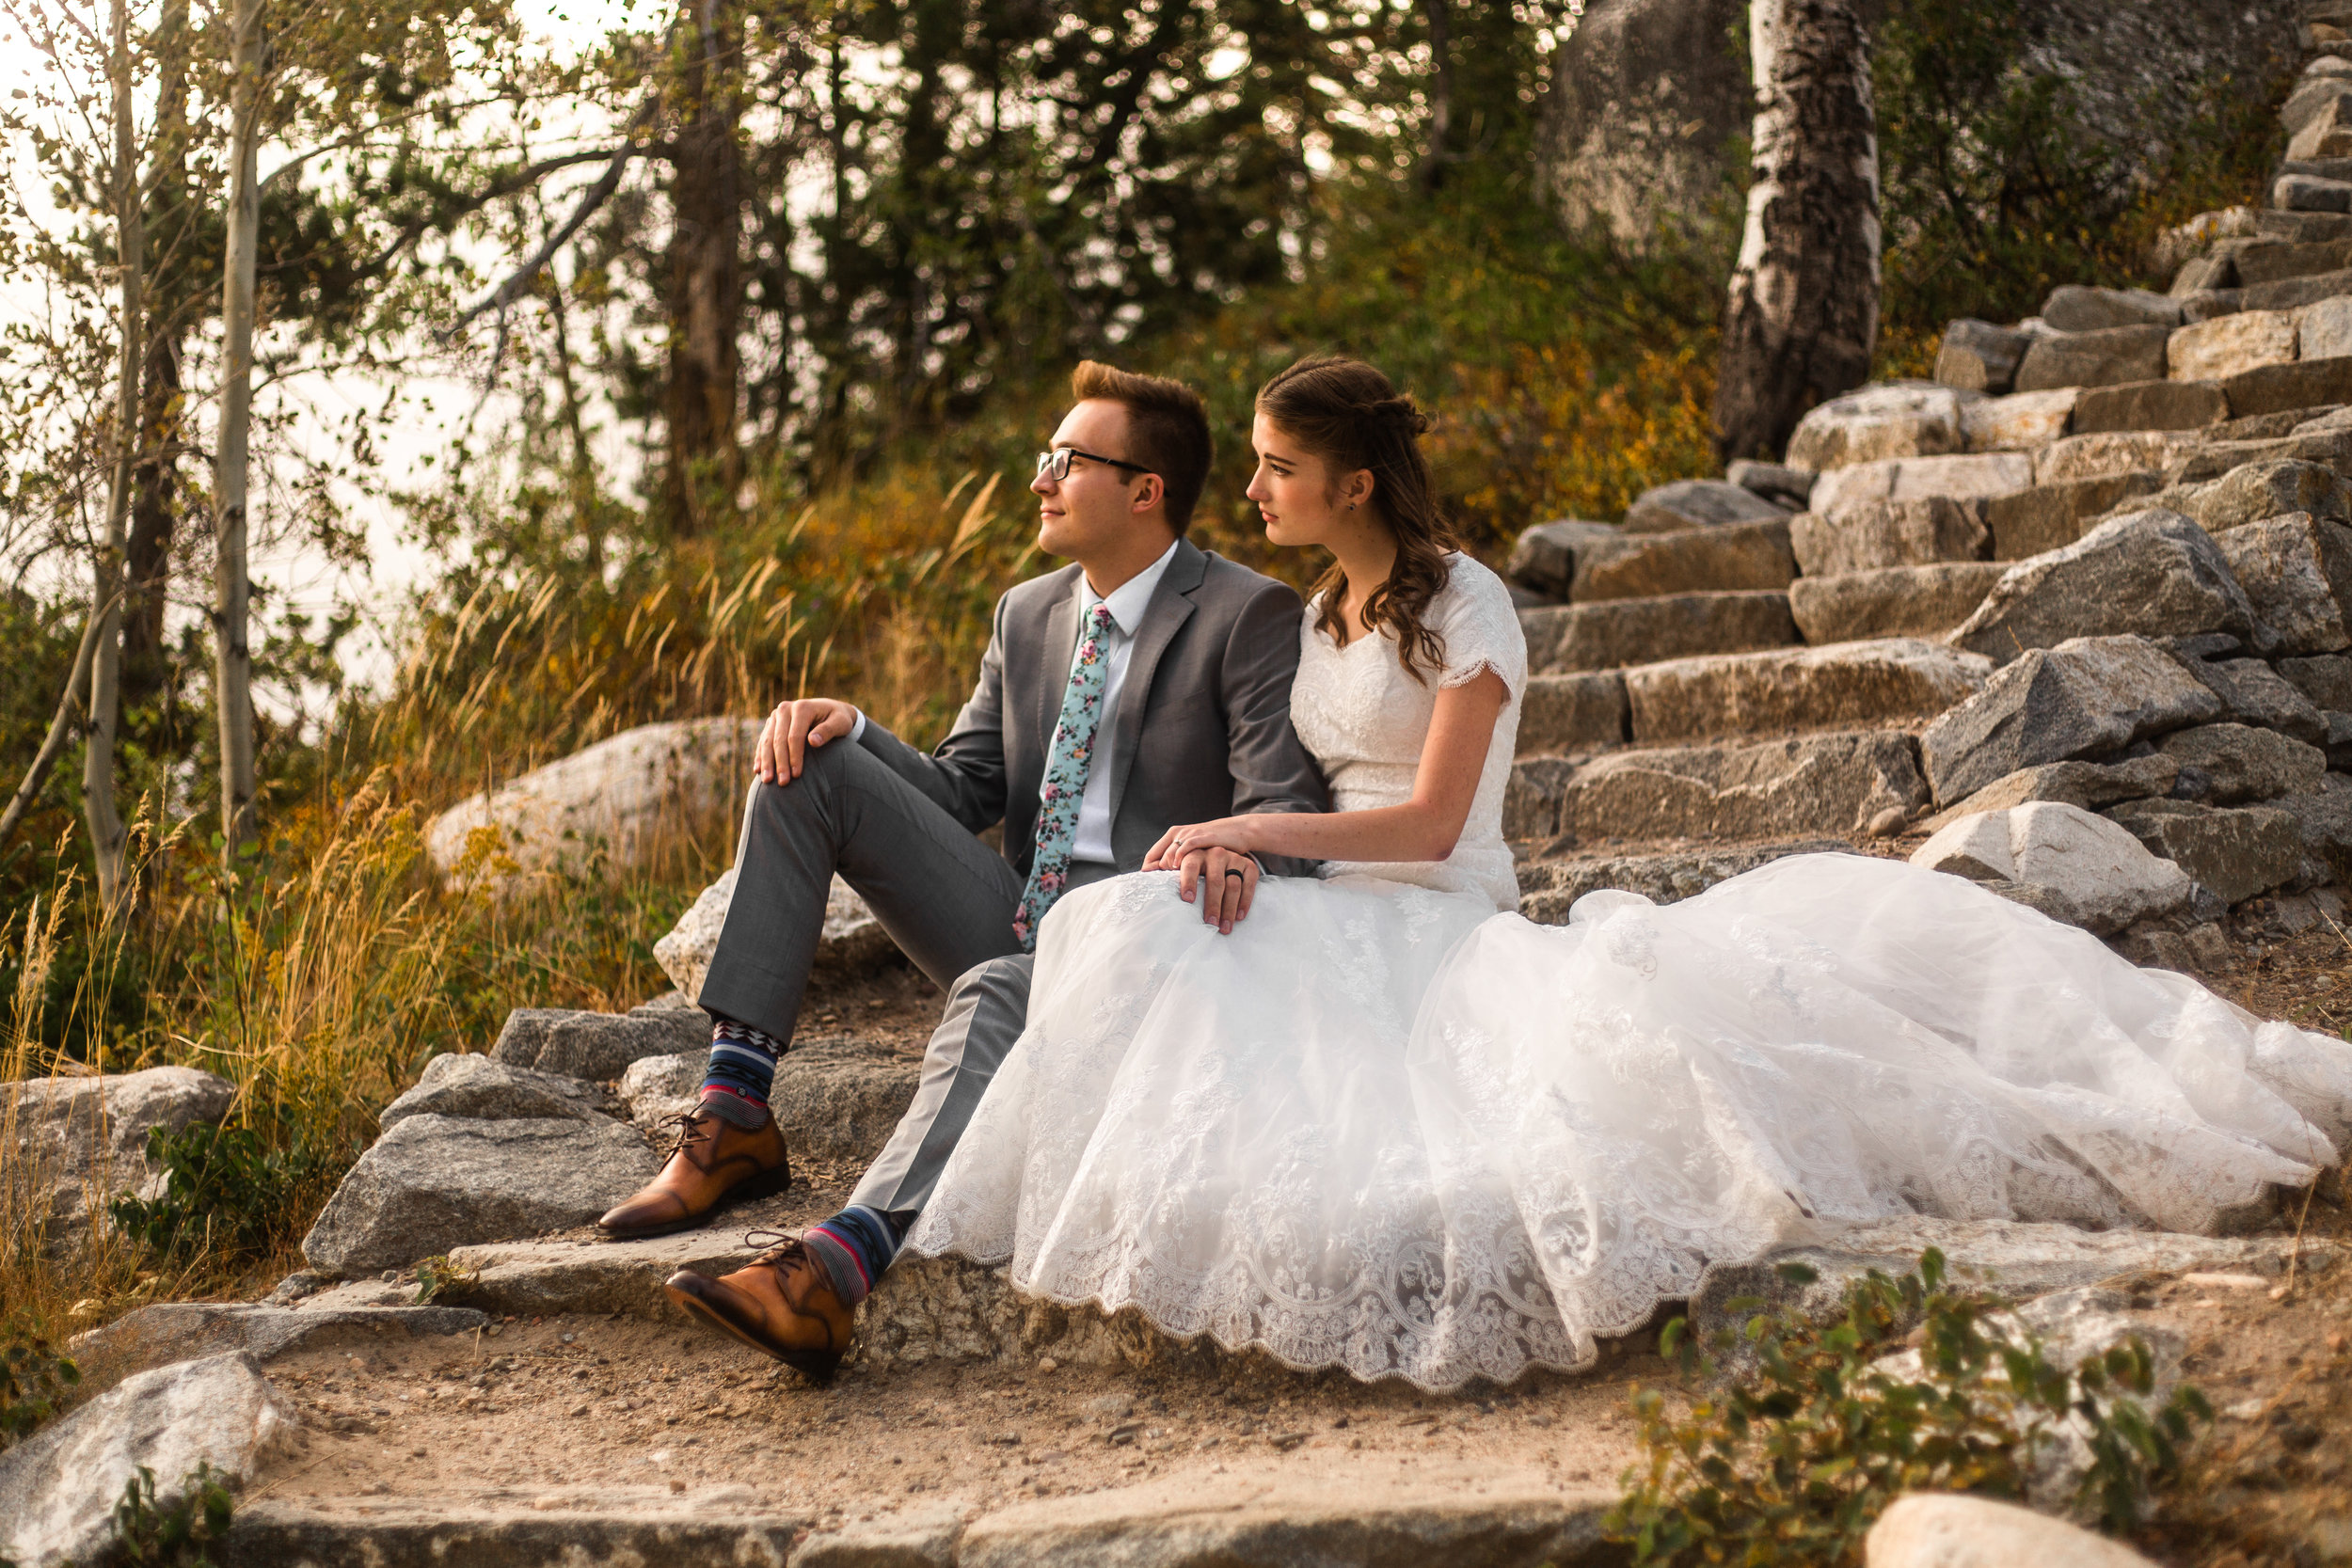 Grand-Teton-National-Park-Bridal-Session3.jpg